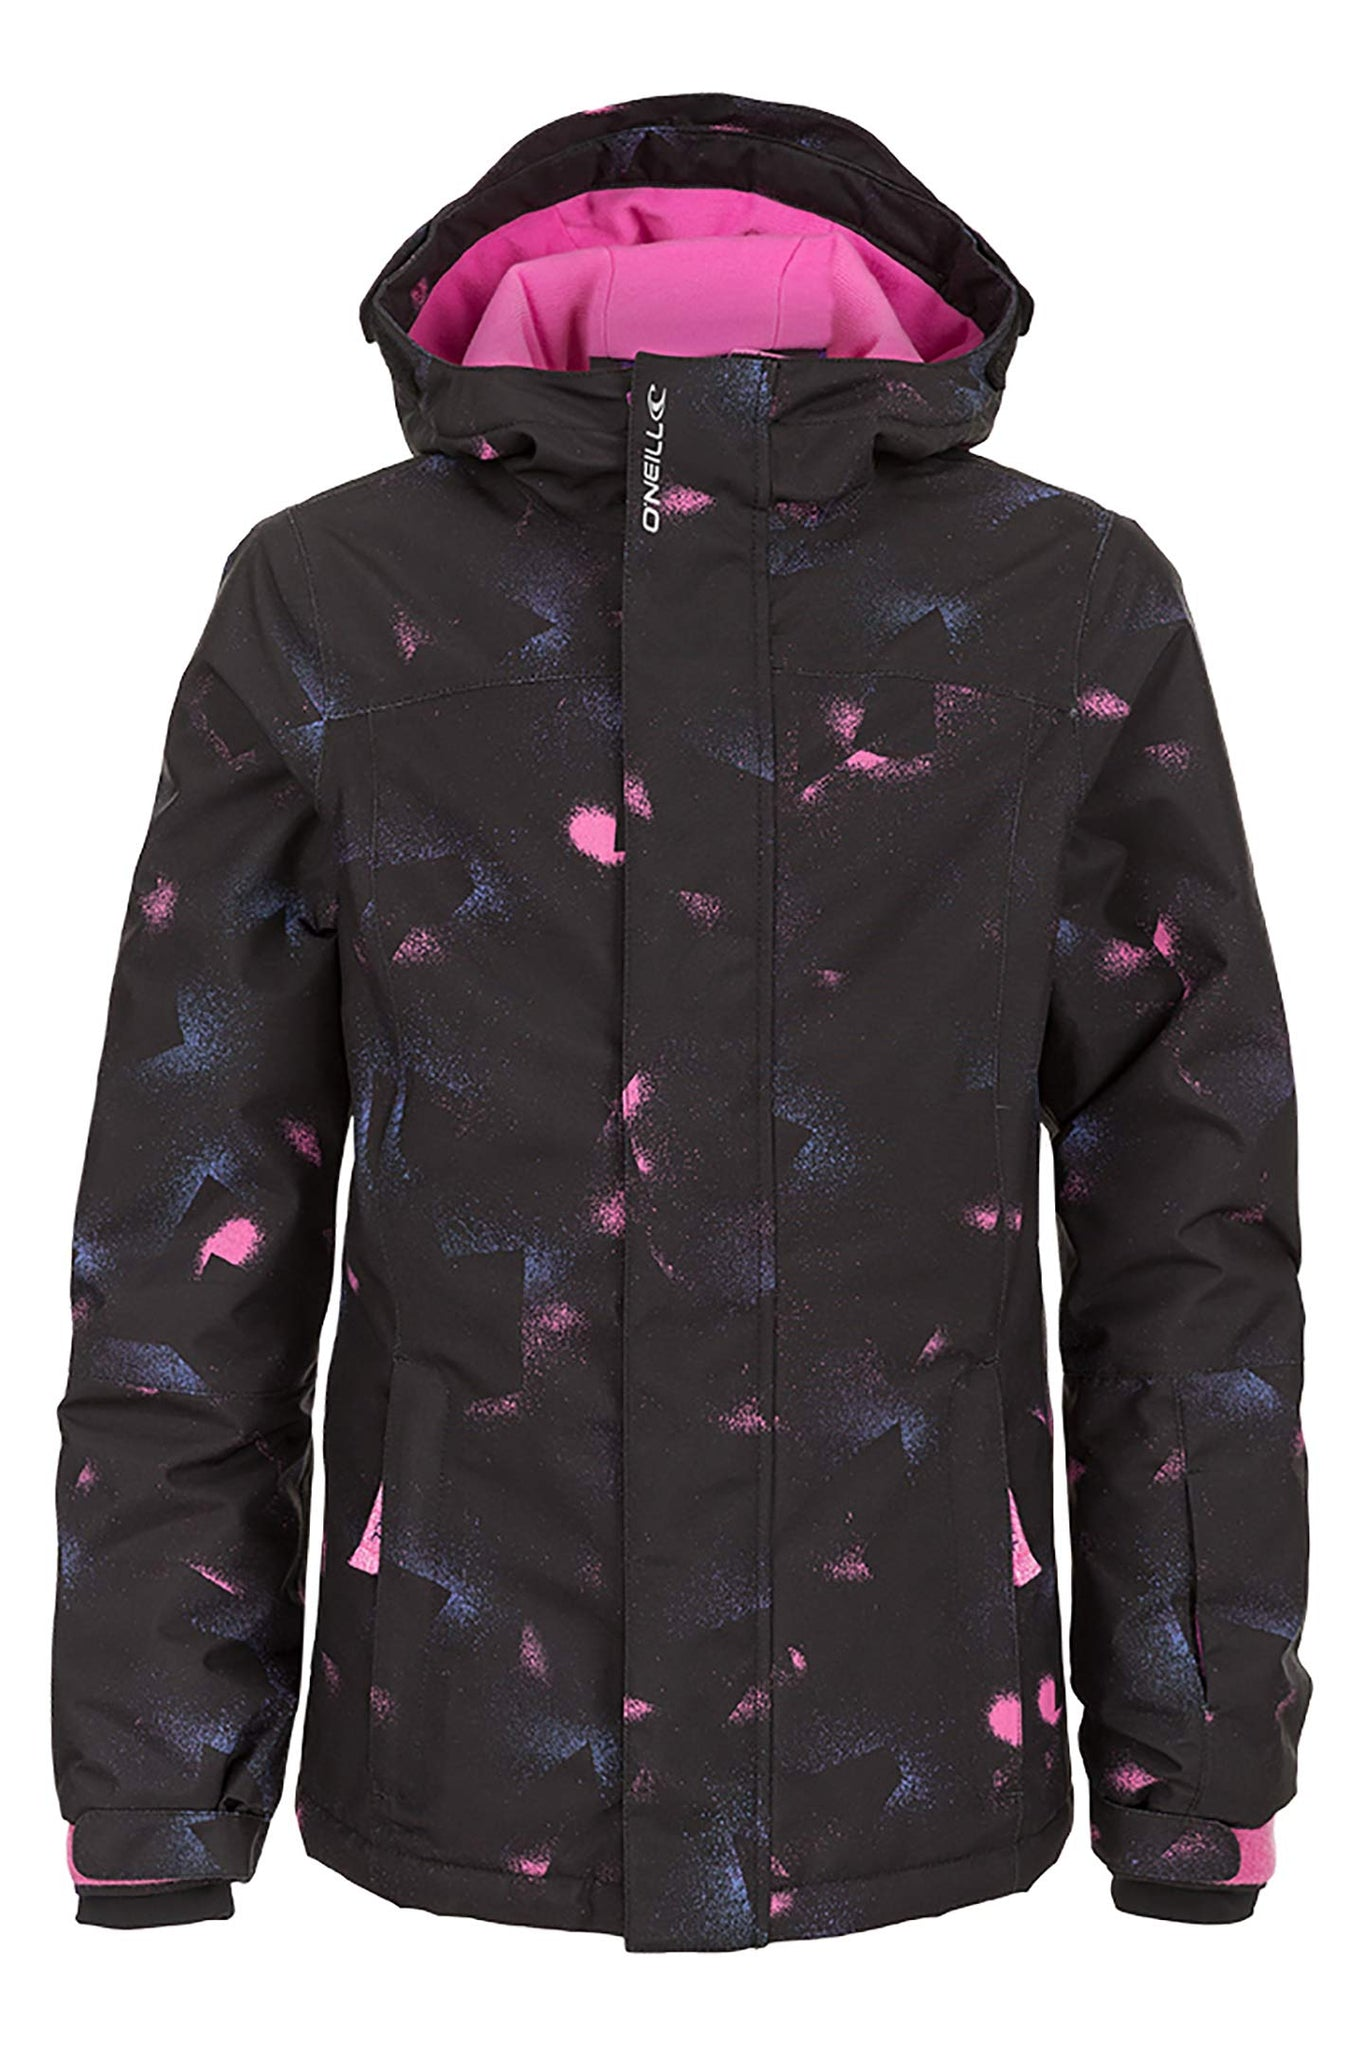 Girls Dazzle Snow Jacket - Blk Aop Rd | O'Neill